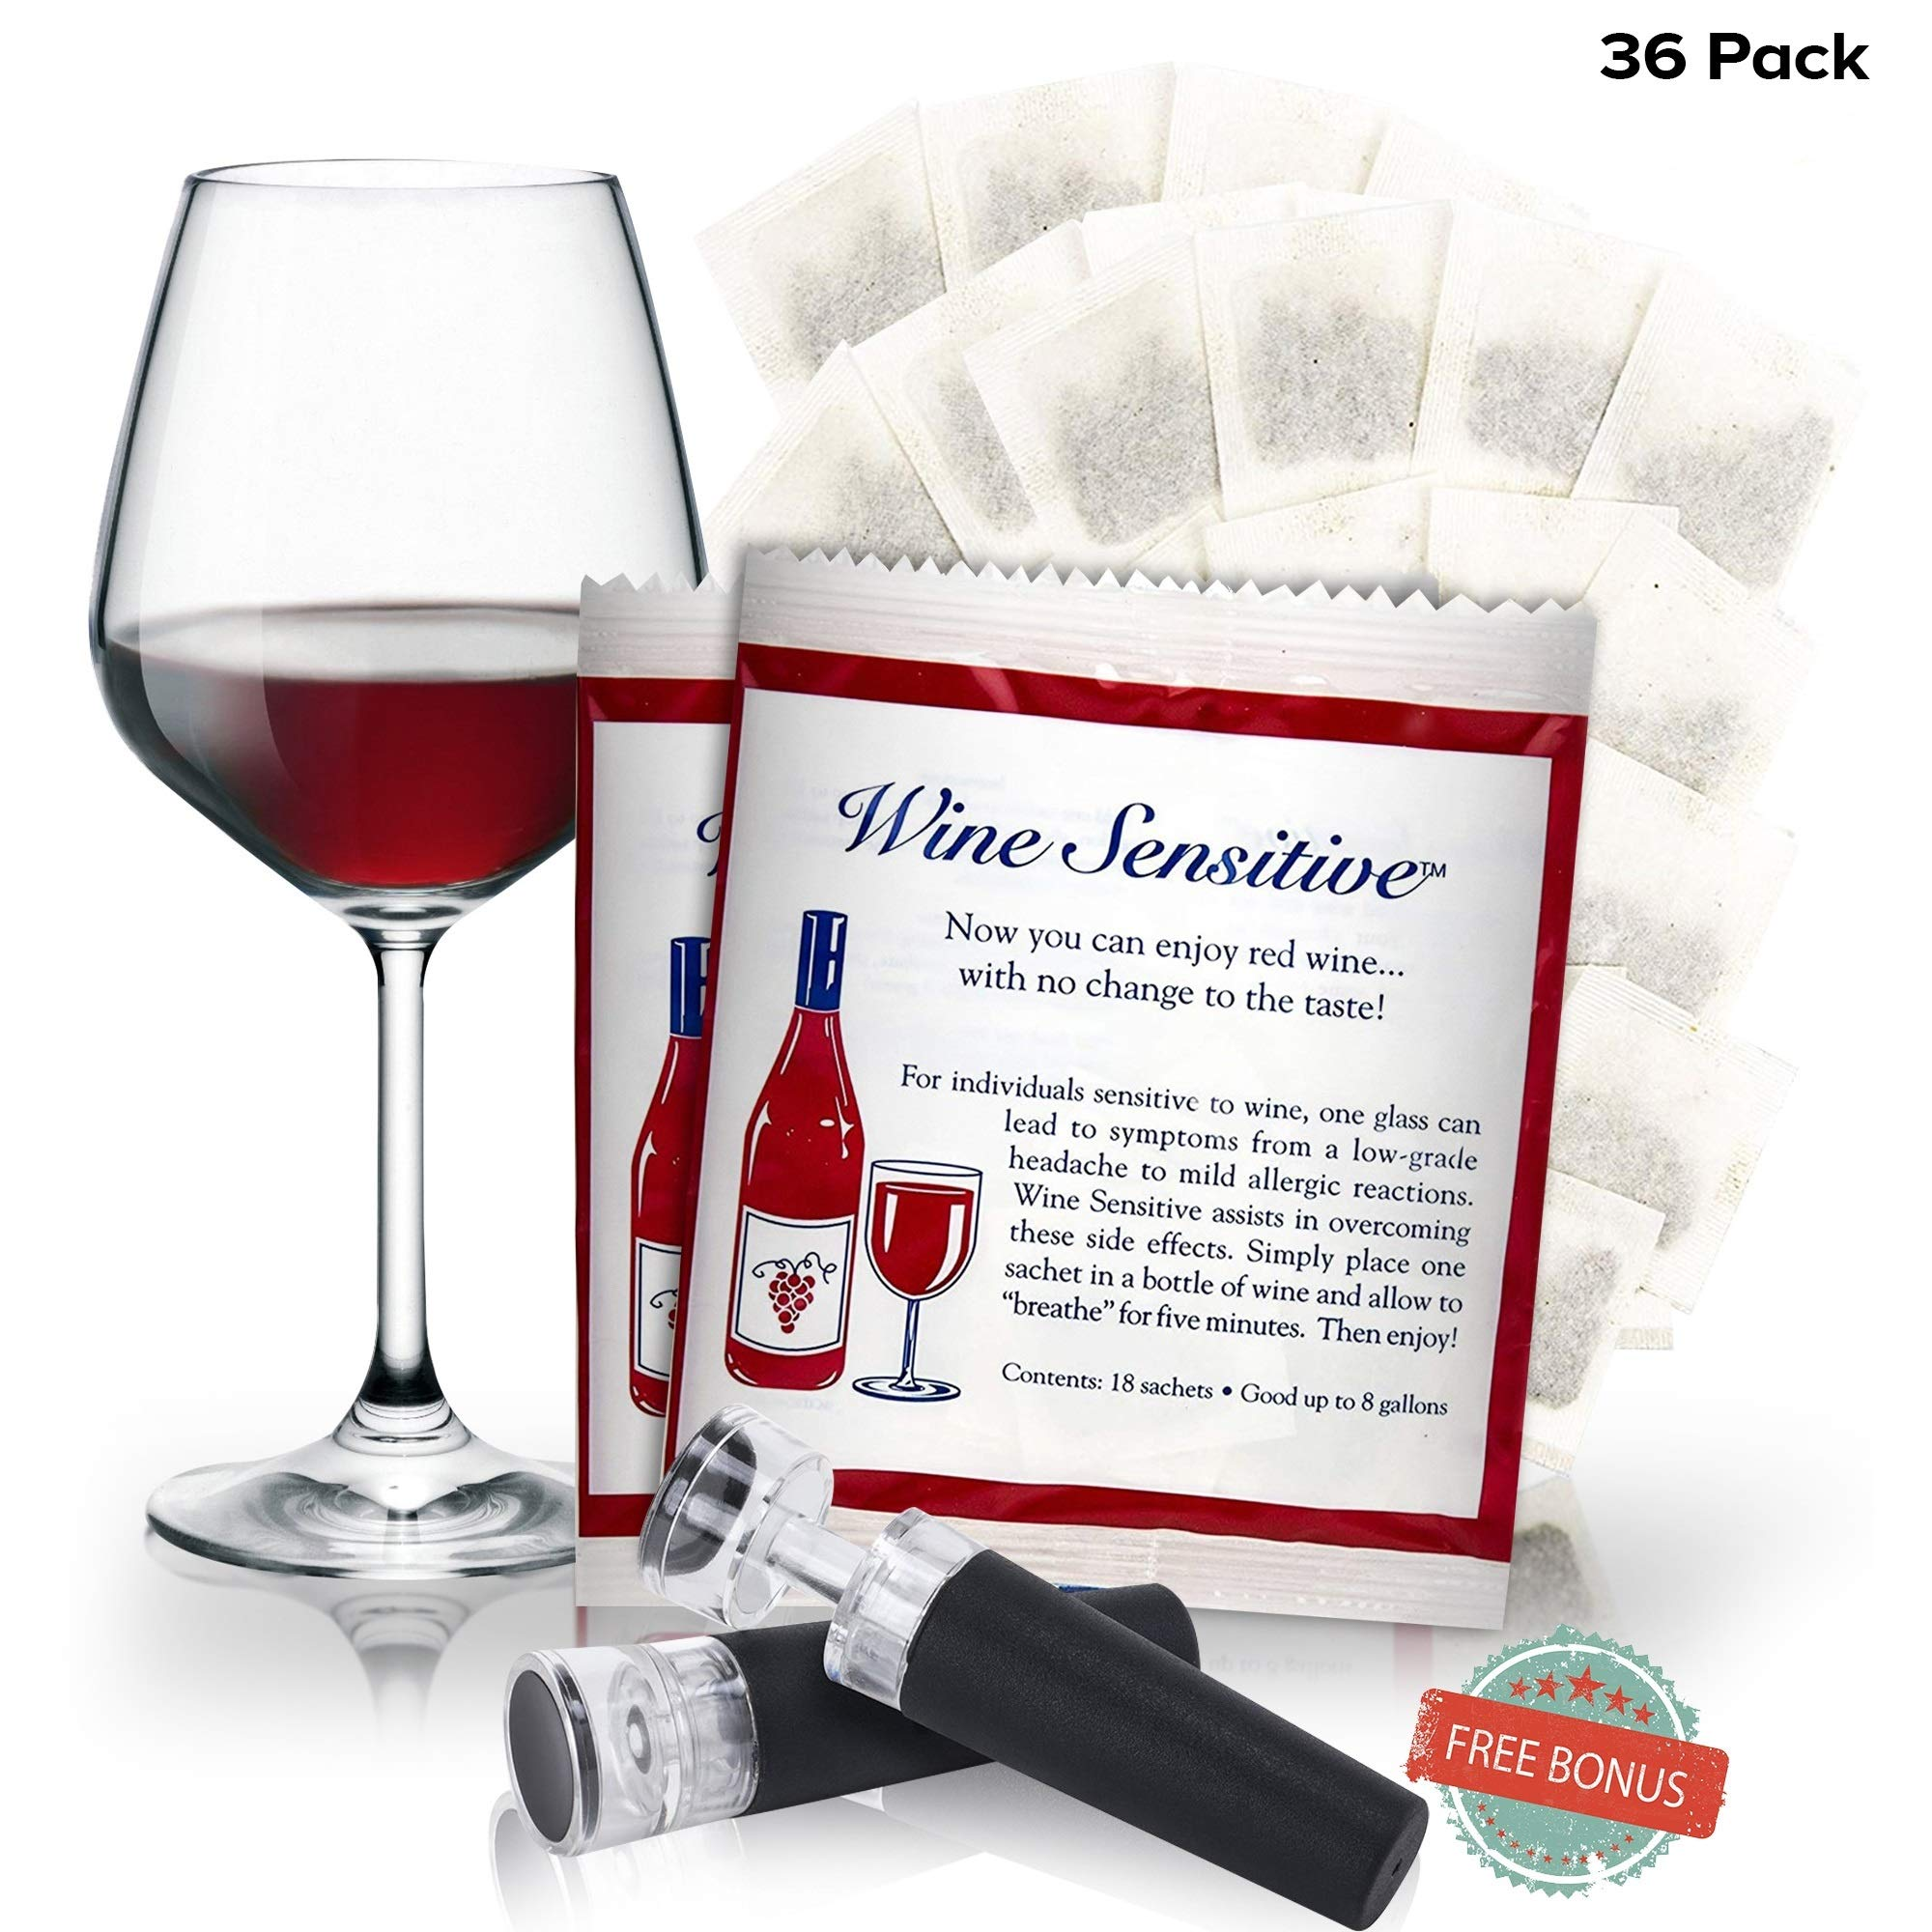 Bonus Pack Easy Organic Filter Sachet Wine Purifier And Sulfite Remover - Natural Ingredients Prevention Purifier Wine Filters Stops Red Wine Headaches by Wine Sensitive